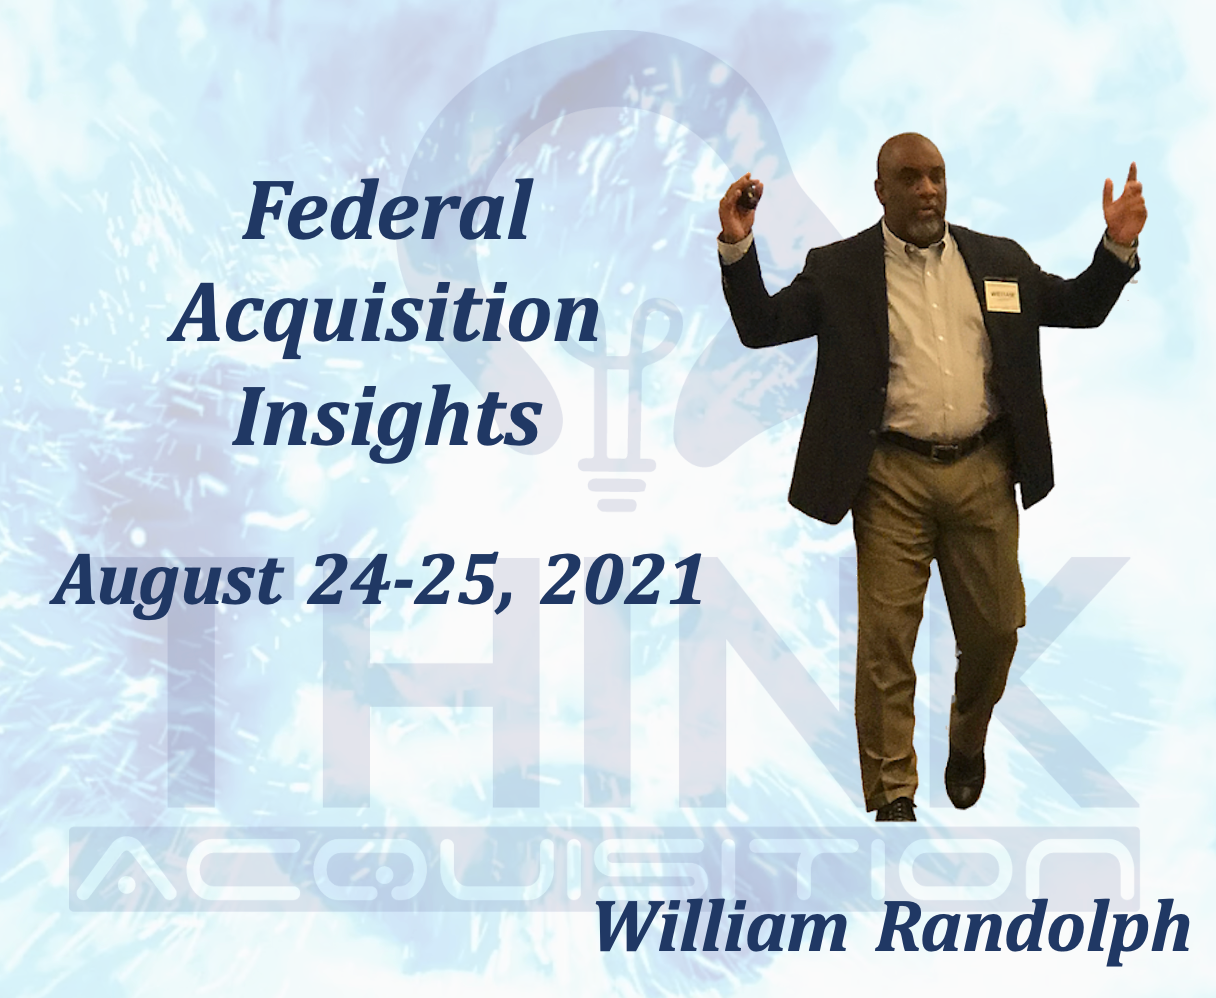 Federal Acquisition Insights